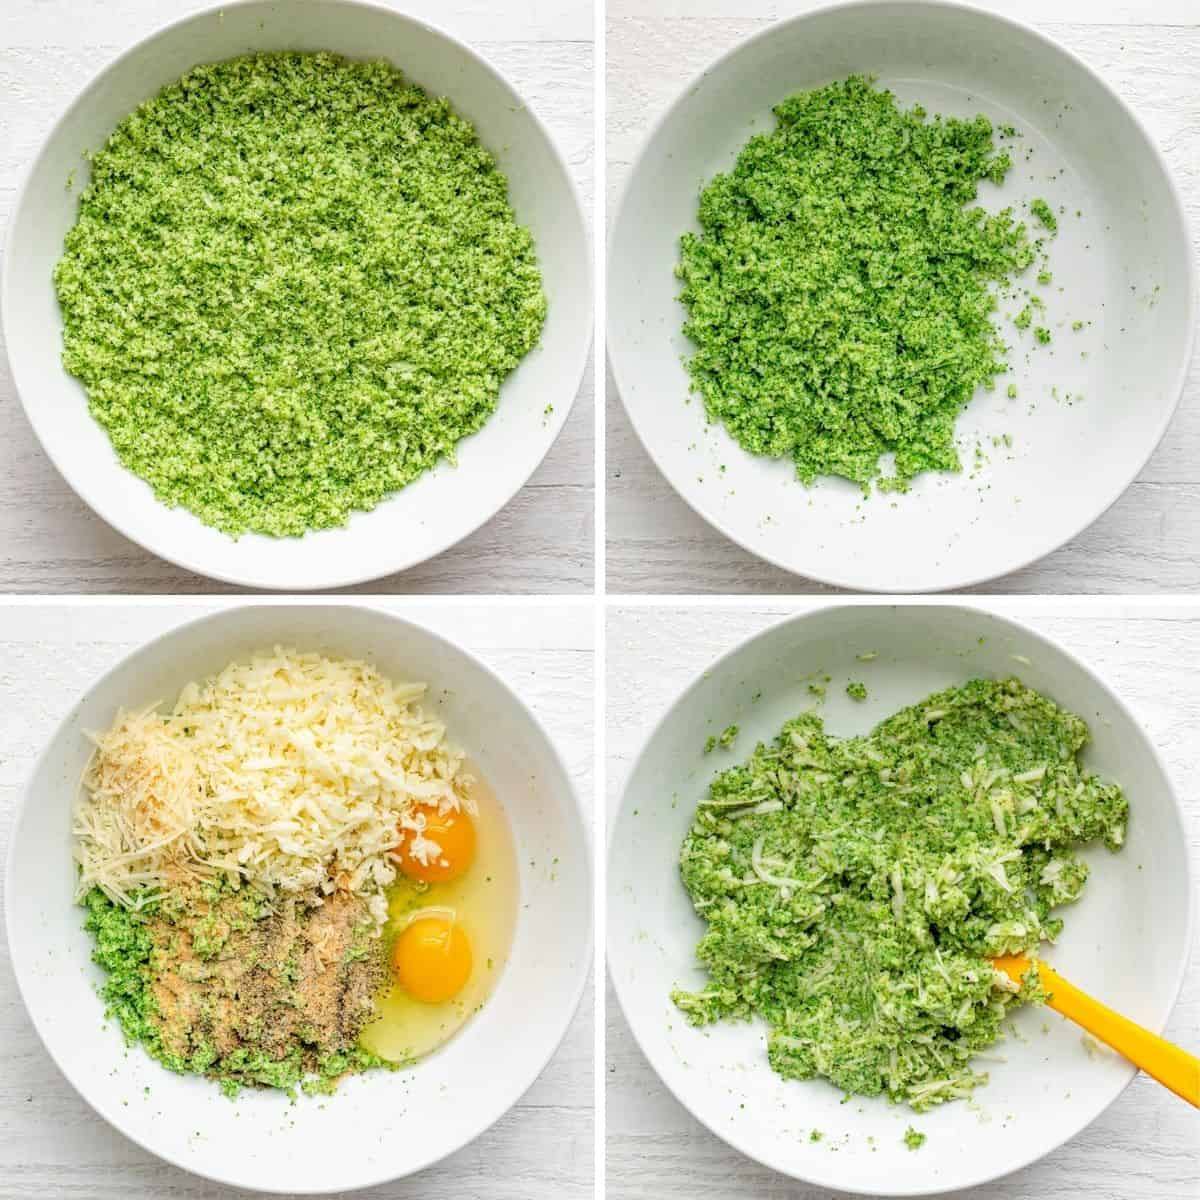 4 image collage to show how to make the recipe with broccoli, cheese, eggs and spices